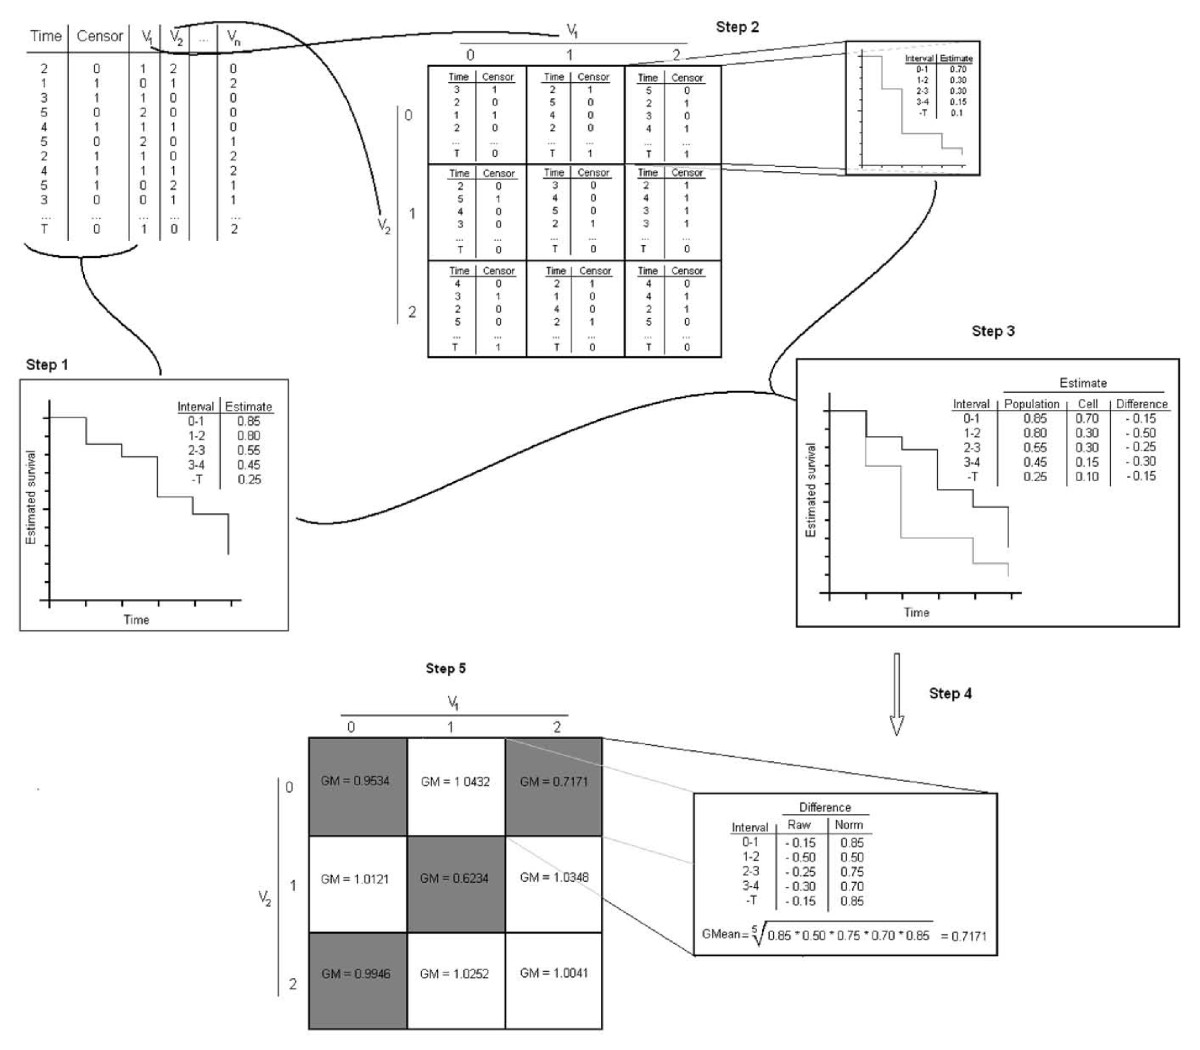 http://static-content.springer.com/image/art%3A10.1186%2F1471-2105-11-416/MediaObjects/12859_2010_Article_3873_Fig1_HTML.jpg